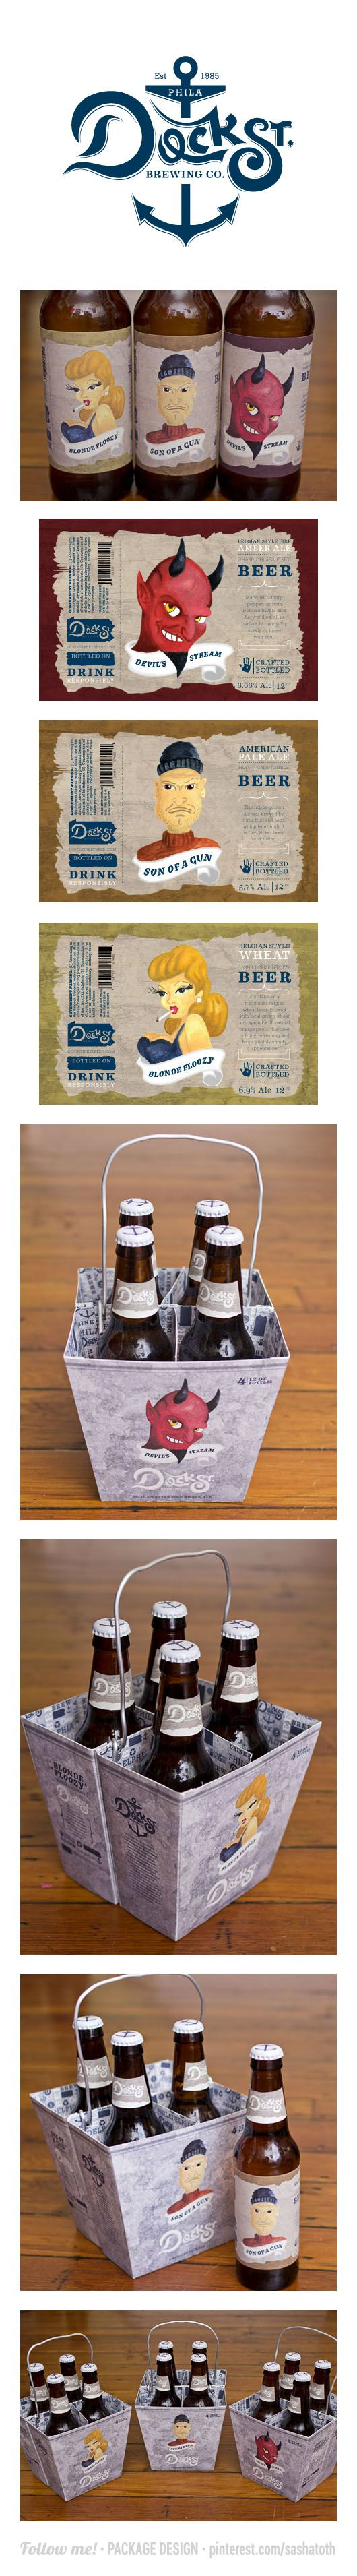 Cool Dock Street #beer #packaging PD